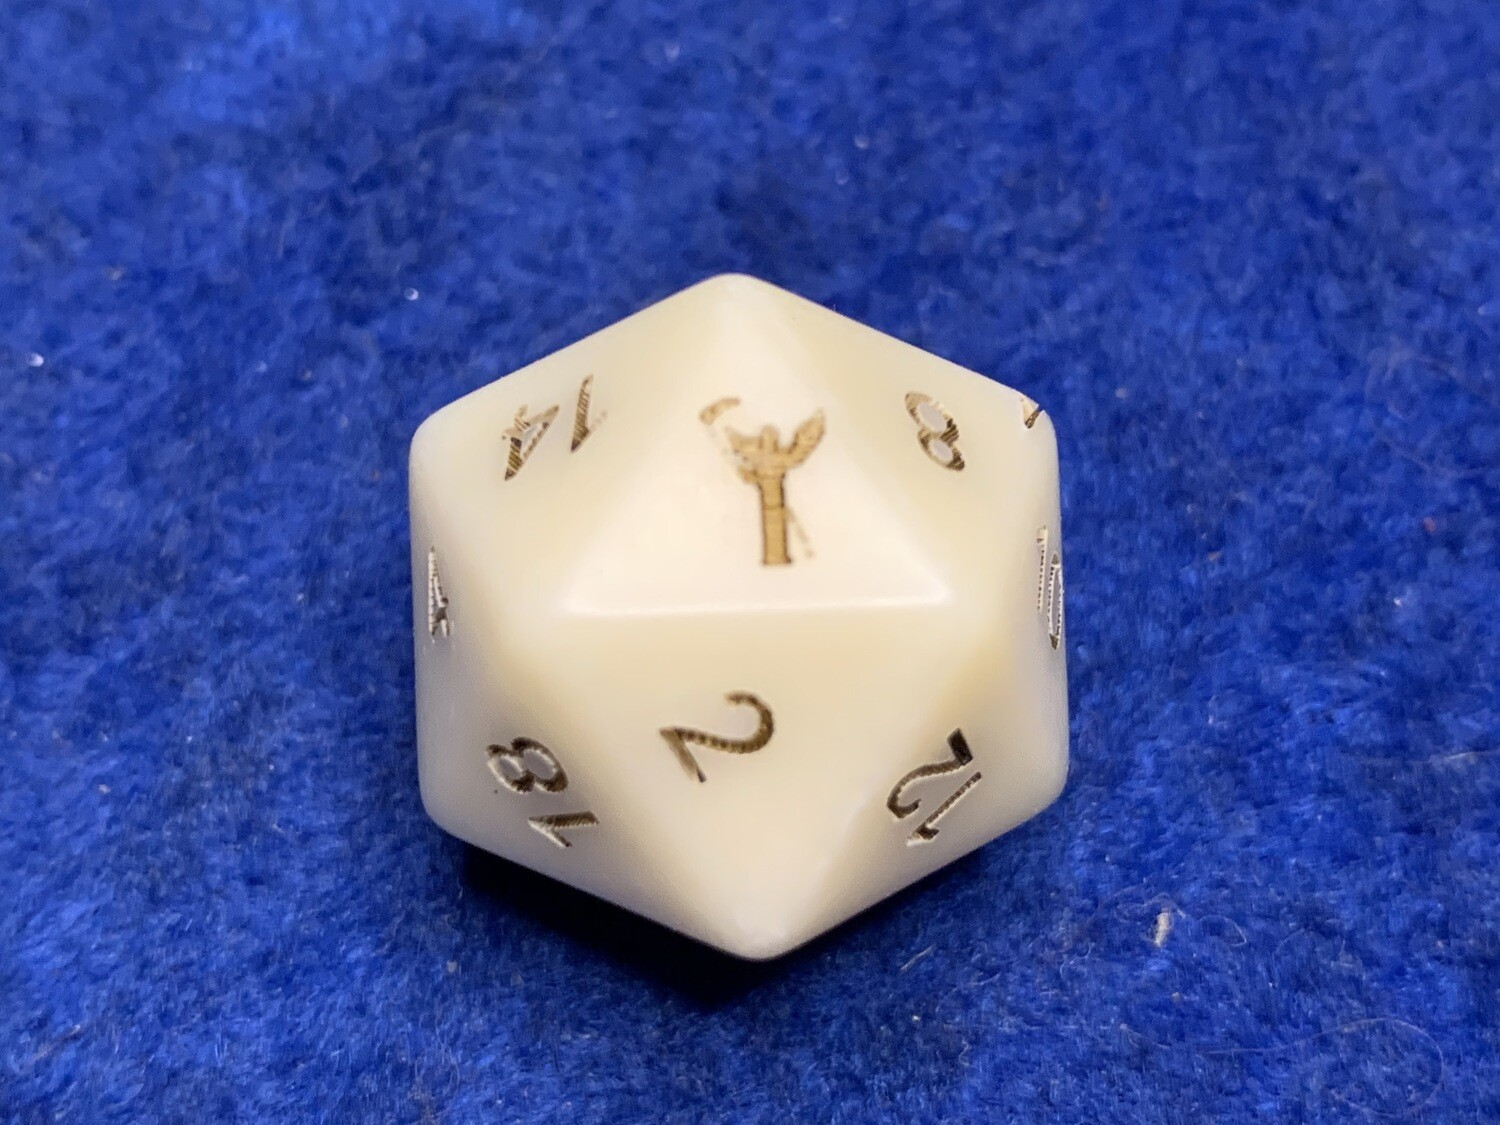 Death Grim Reaper D20 Die Custom Opaque Ivory D20 16mm Gaming Tabletop RPG Dice Roleplay CCG Board Cards Games Marker Tokens Count